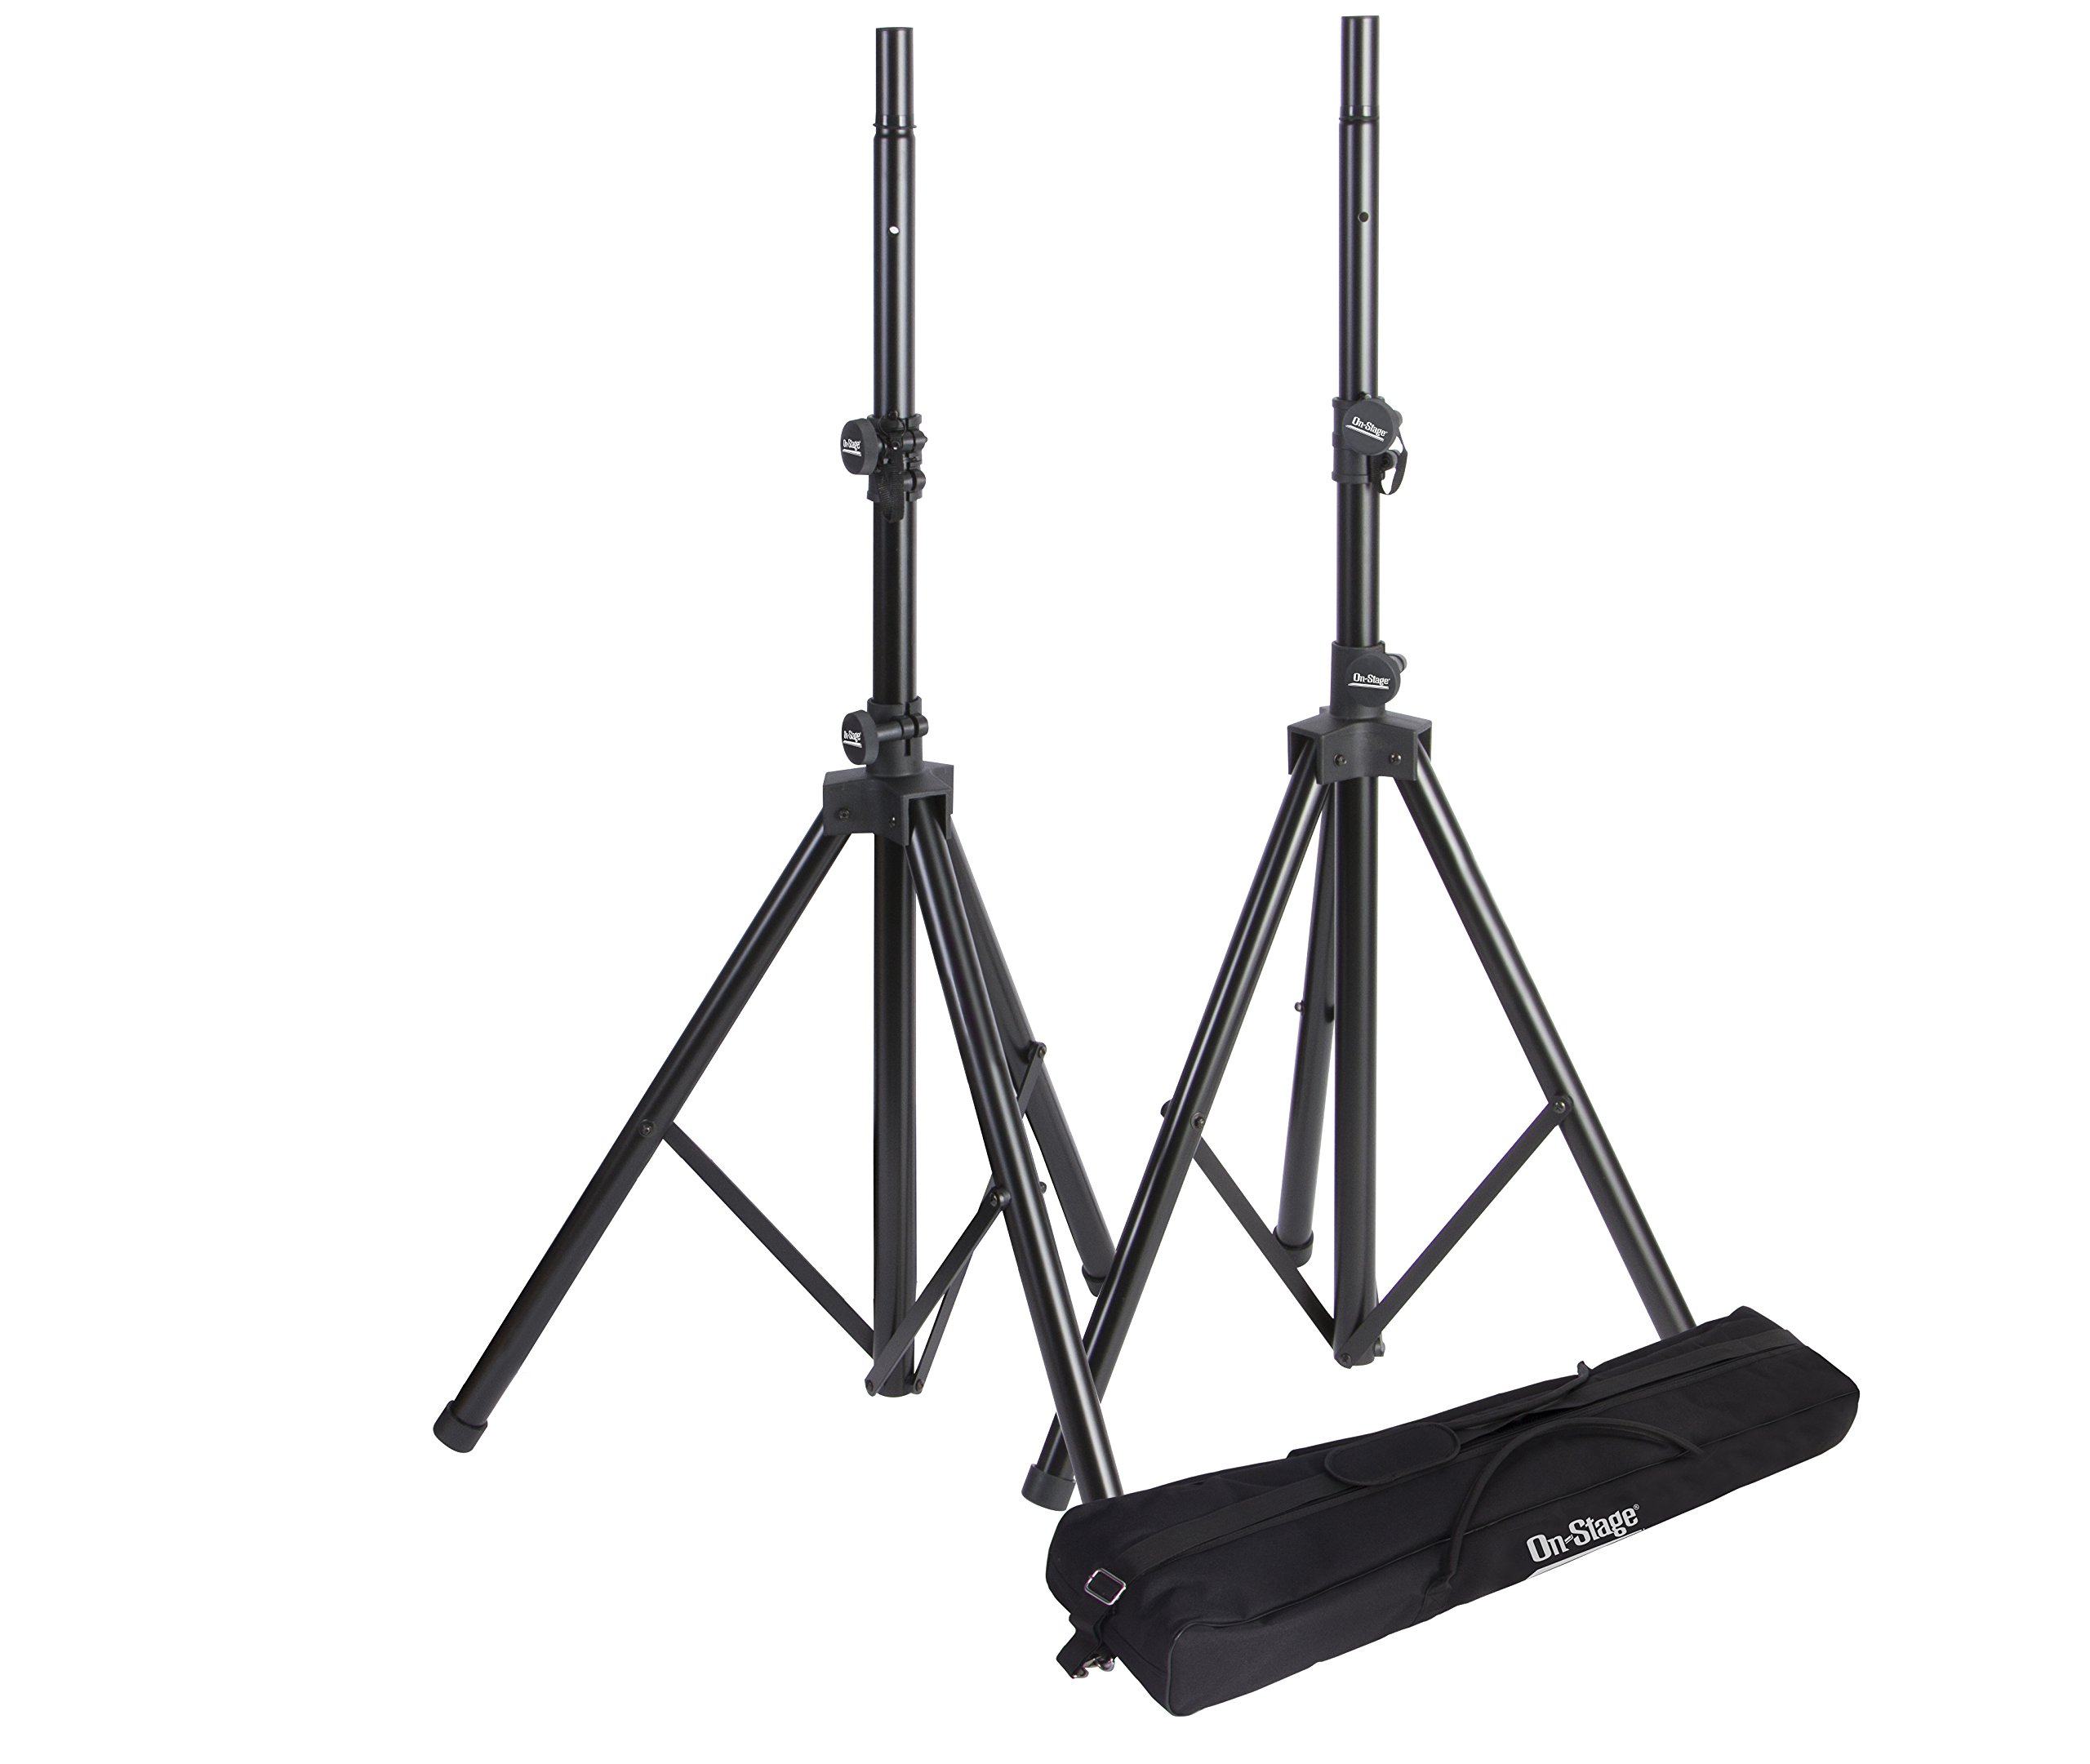 On-Stage SSP7950 Tripod Speaker Stand Package with Bag by OnStage